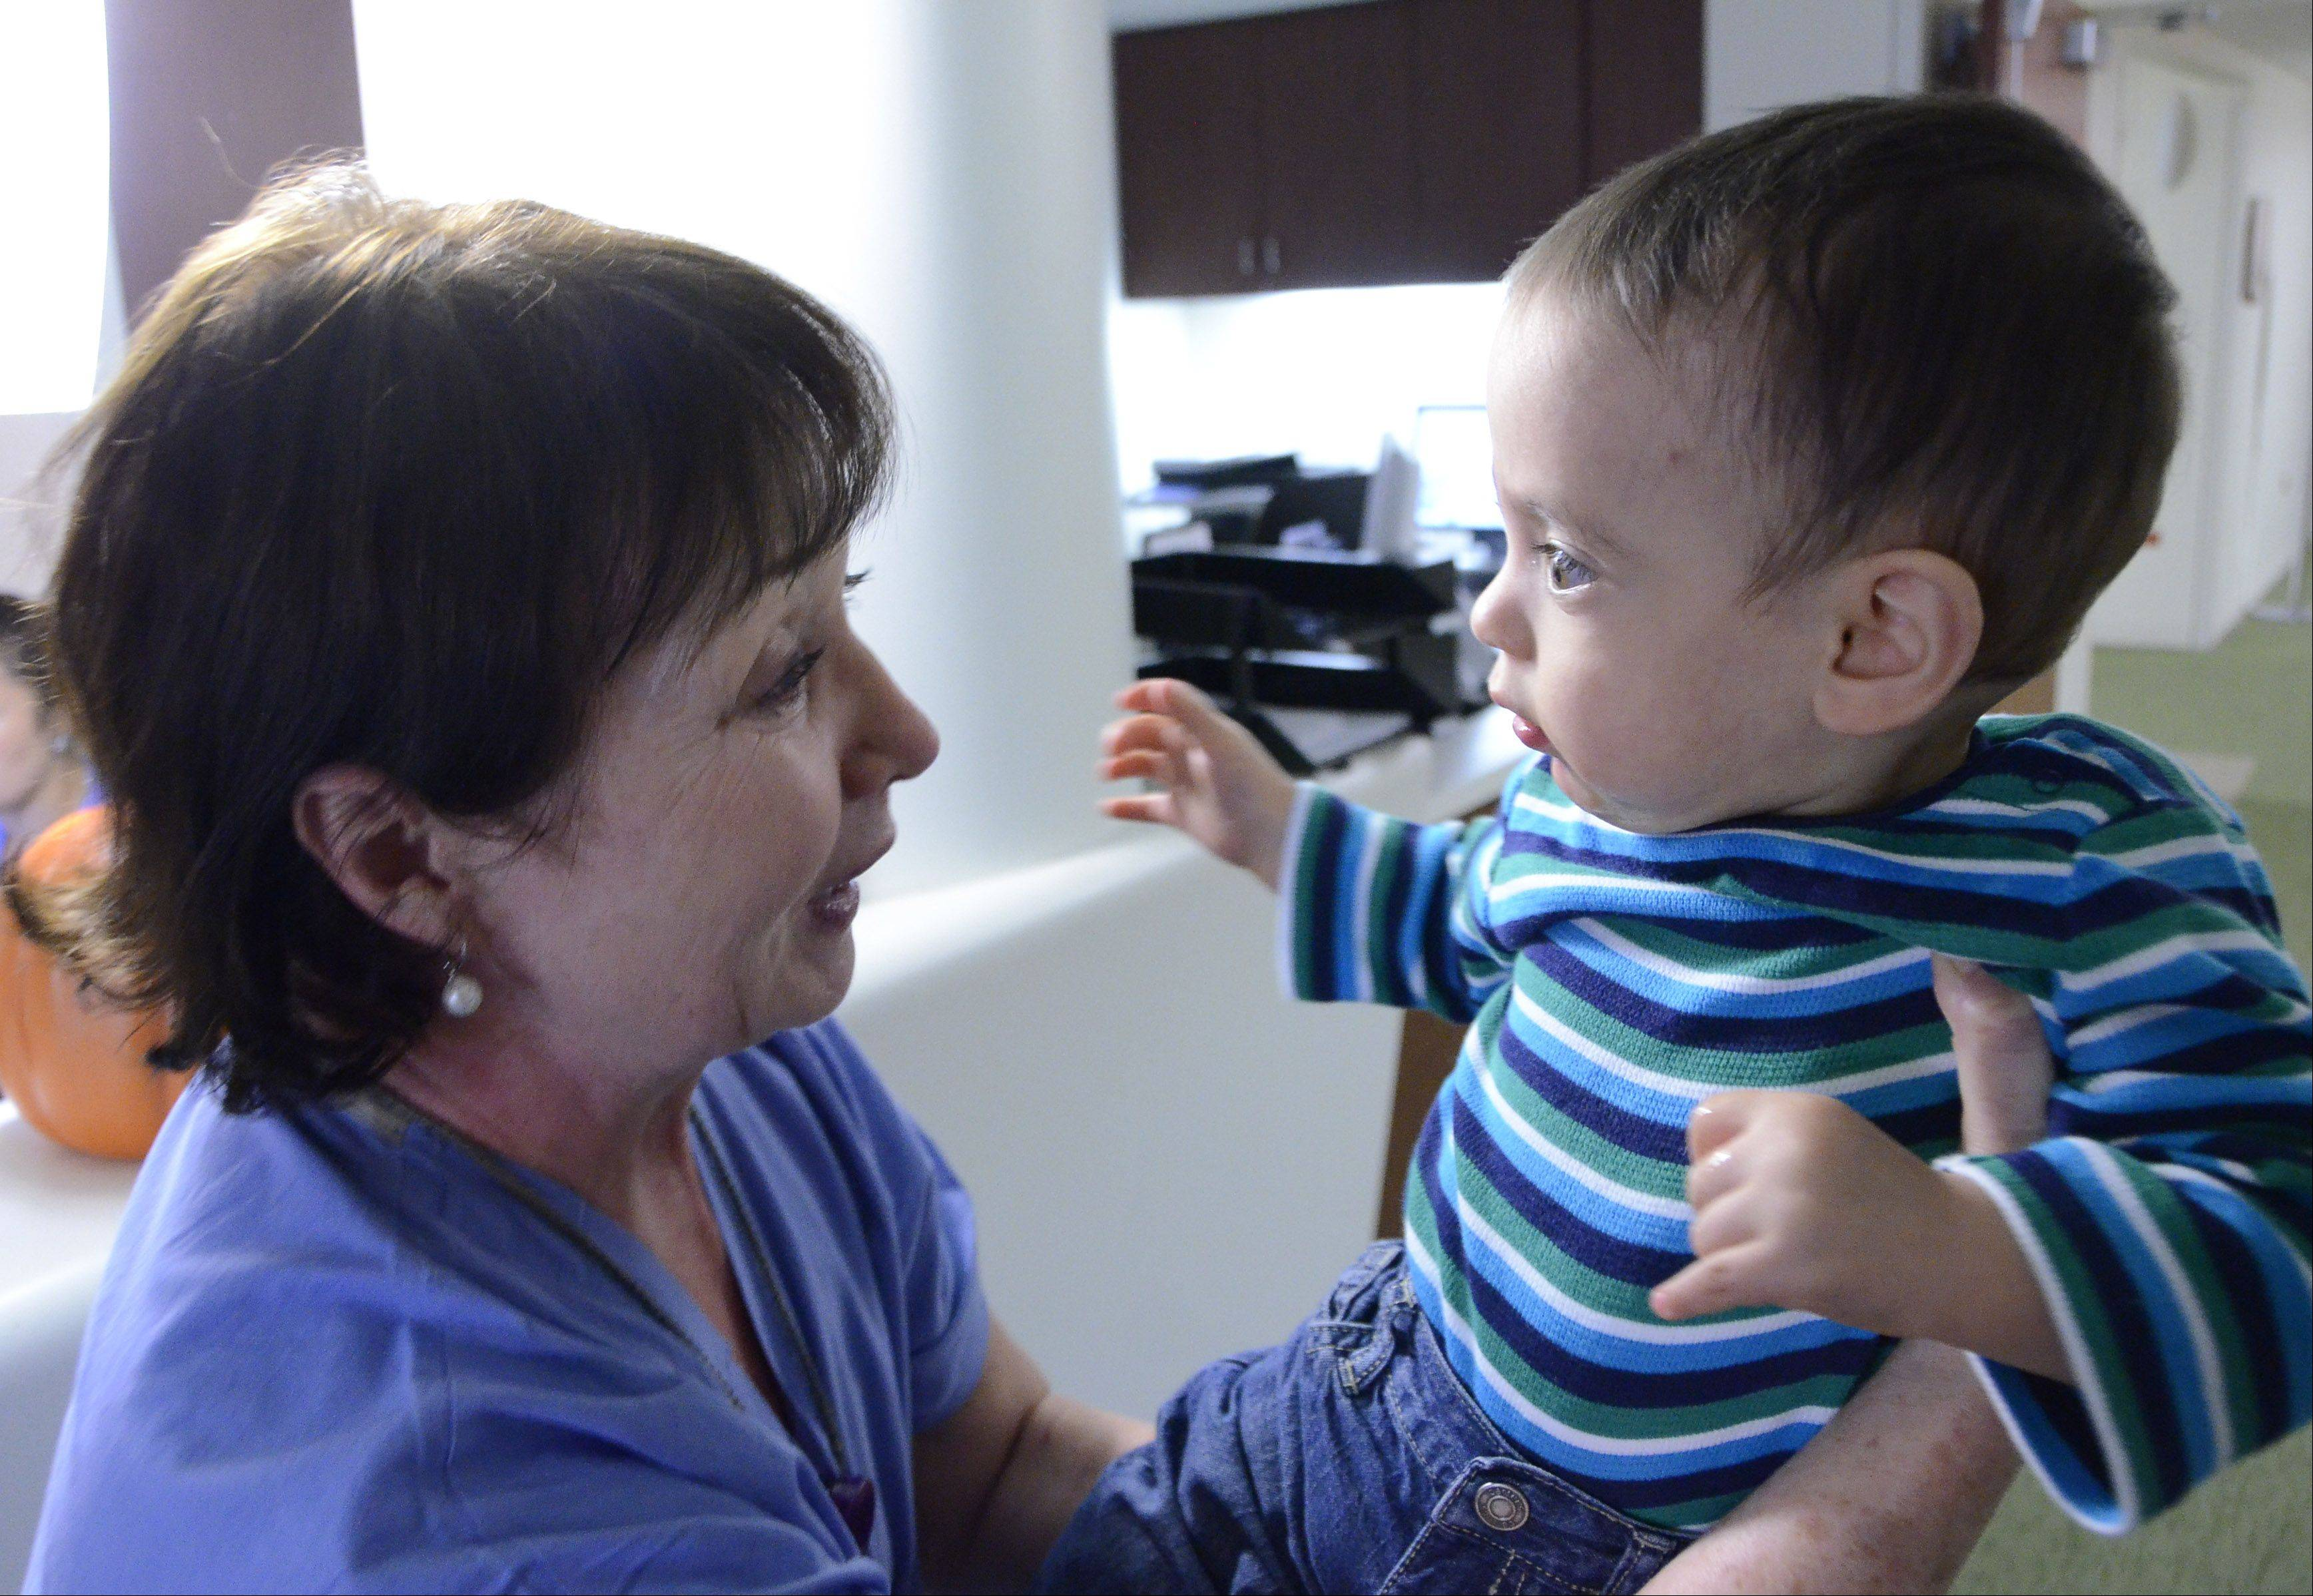 Tears were flowing when nurse Irene Wysocki was reunited with Zachary Kordik Thursday in the neonatal ICU.